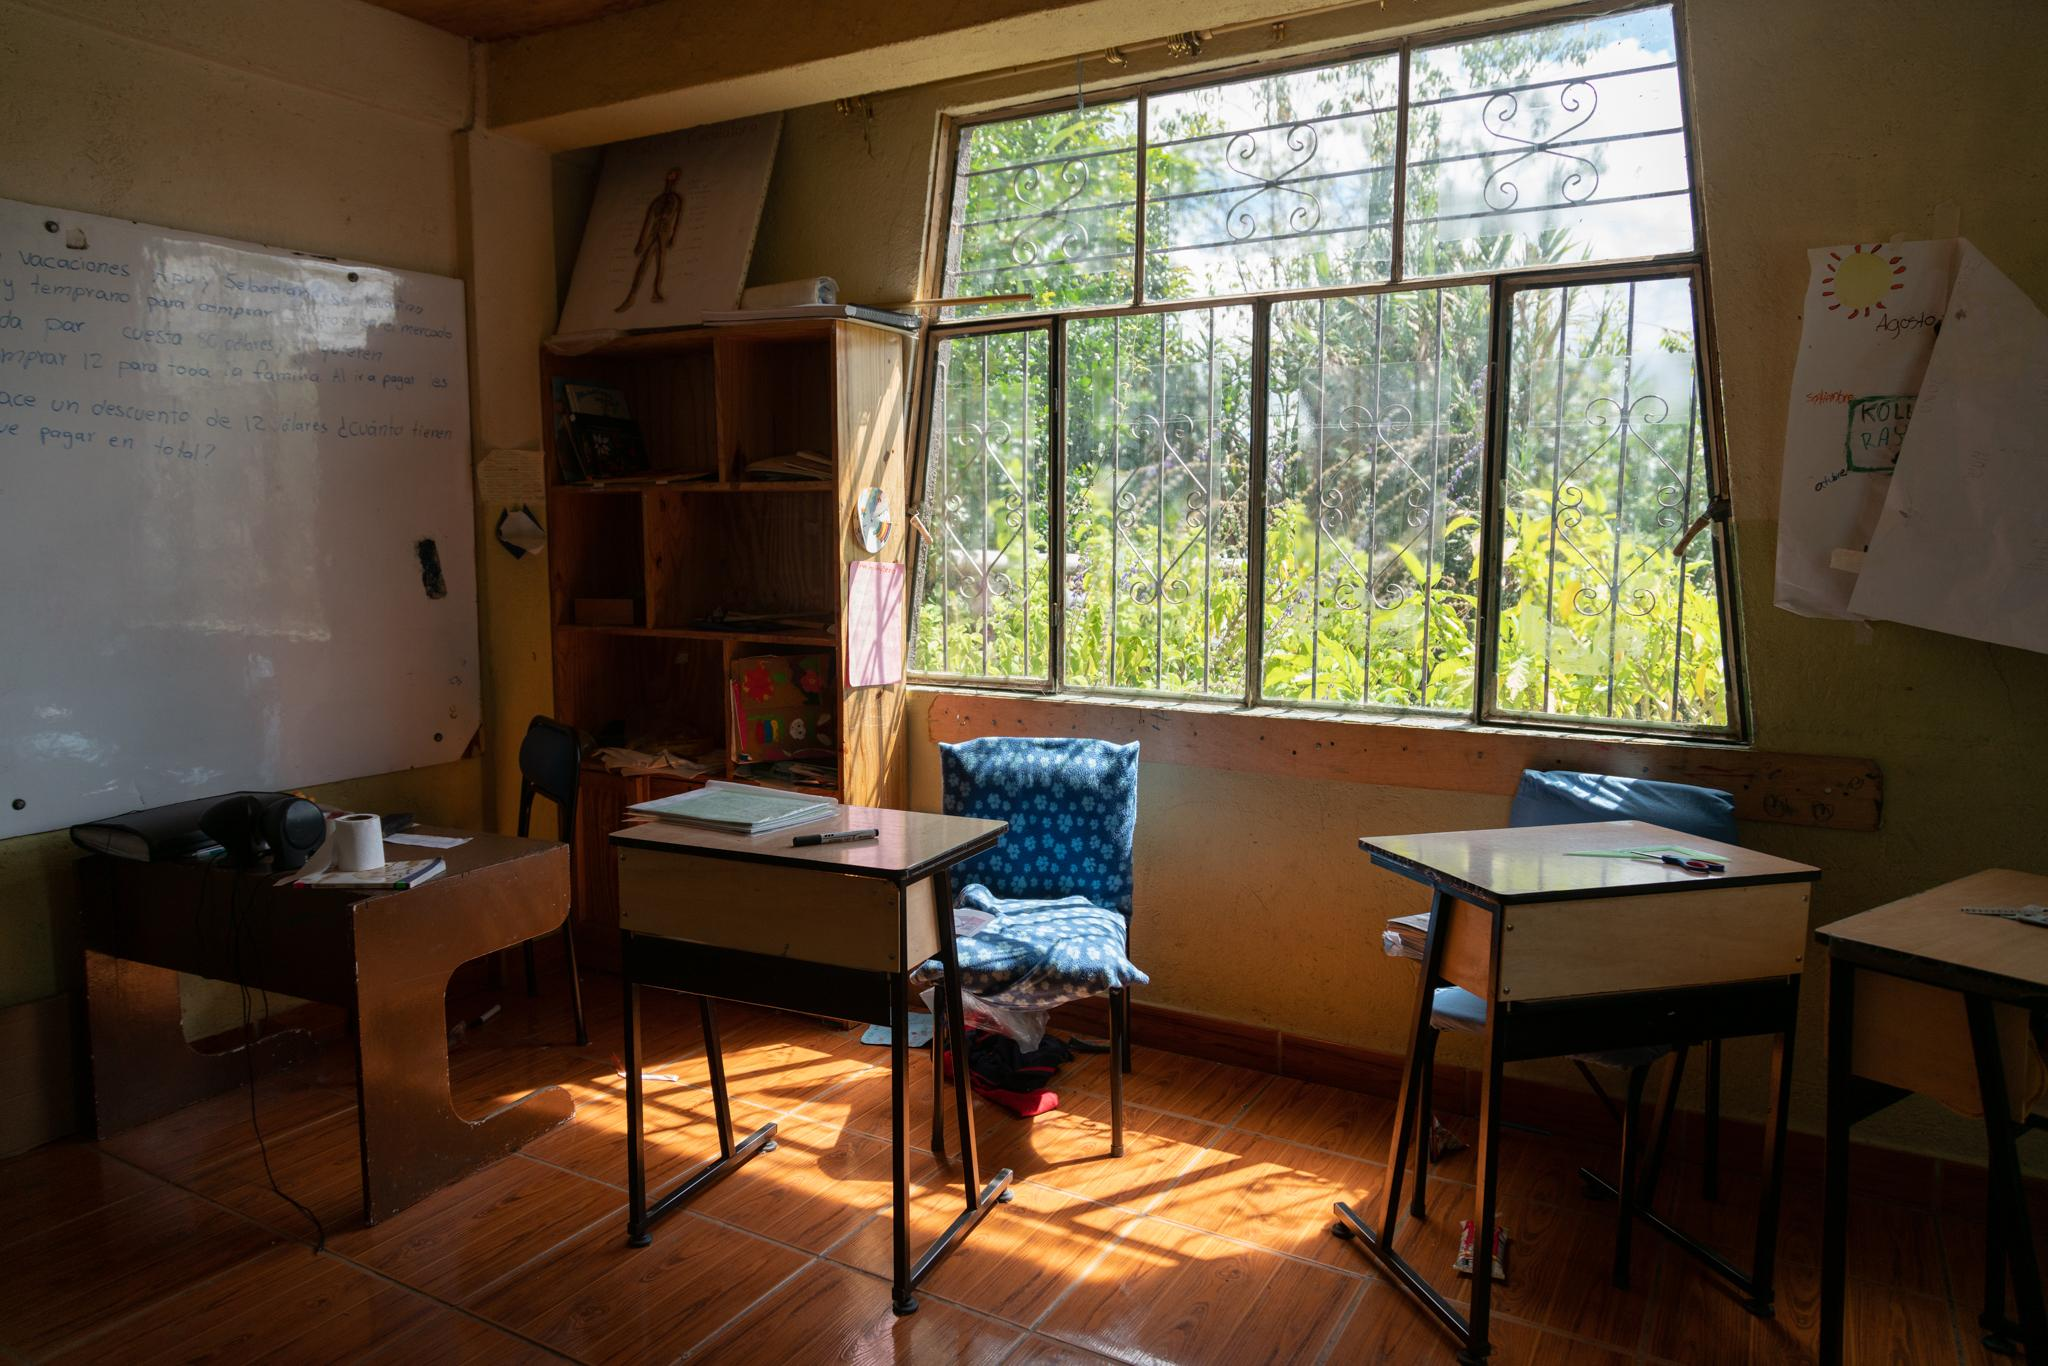 Empty school, just as the students left it on the last day of school, before the quarantine began in Quito on March 16. Yachay Wasi, Bilingual Intercultural Community Education Center, is an institution that works with contributions from the Government and, above all, with donations and small monthly financial contributions from some families of the students. The school has 70 students between 5 and 13 years old. The monthly value per child is $ 35 and for many families it is priceless. They propose a community education, based on the values ​​and wisdom of indigenous, respect of mother earth, combining with contemporary knowledge. Most of its students are migrant farmers from other regions of the country, so learning from the school's biodiverse crops is a requirement. The school started illegally after the indigenous uprising in the 90s, its principals are indigenous. In 2001 they legalized the school. Due to the Pandemic-Covid19 the teachers prepare their classes and share them with the children through WhatsApp and Zoom. Most students have Internet access at home or on their cell phones. Most families have a single digital device. Teachers print assignments weekly for families who do not have internet acces. The teachers' challenge is to generate educational material and that the students do not stop studying. Photographer: Ana María Buitron. Quito, Ecuador. La escuela vacía, tal como la dejaron el último día de clases los estudiantes, antes de que inicie la cuarentena en Quito el 16 de marzo. Yachay Wasi, Centro Educativo Comunitario Intercultural Bilingüe. Es una institución que funciona con aportes del Estado y se sostiene sobre todo con donaciones y pequeños aportes económicos mensuales de algunas familias de los estudiantes. La escuela tiene 70 estudiantes entre 5 y 13 años. El valor mensual por niño es $35 y para muchas familias resulta impagable. Proponen una educación comunitaria, basada en los valores y sabidurías de los campe